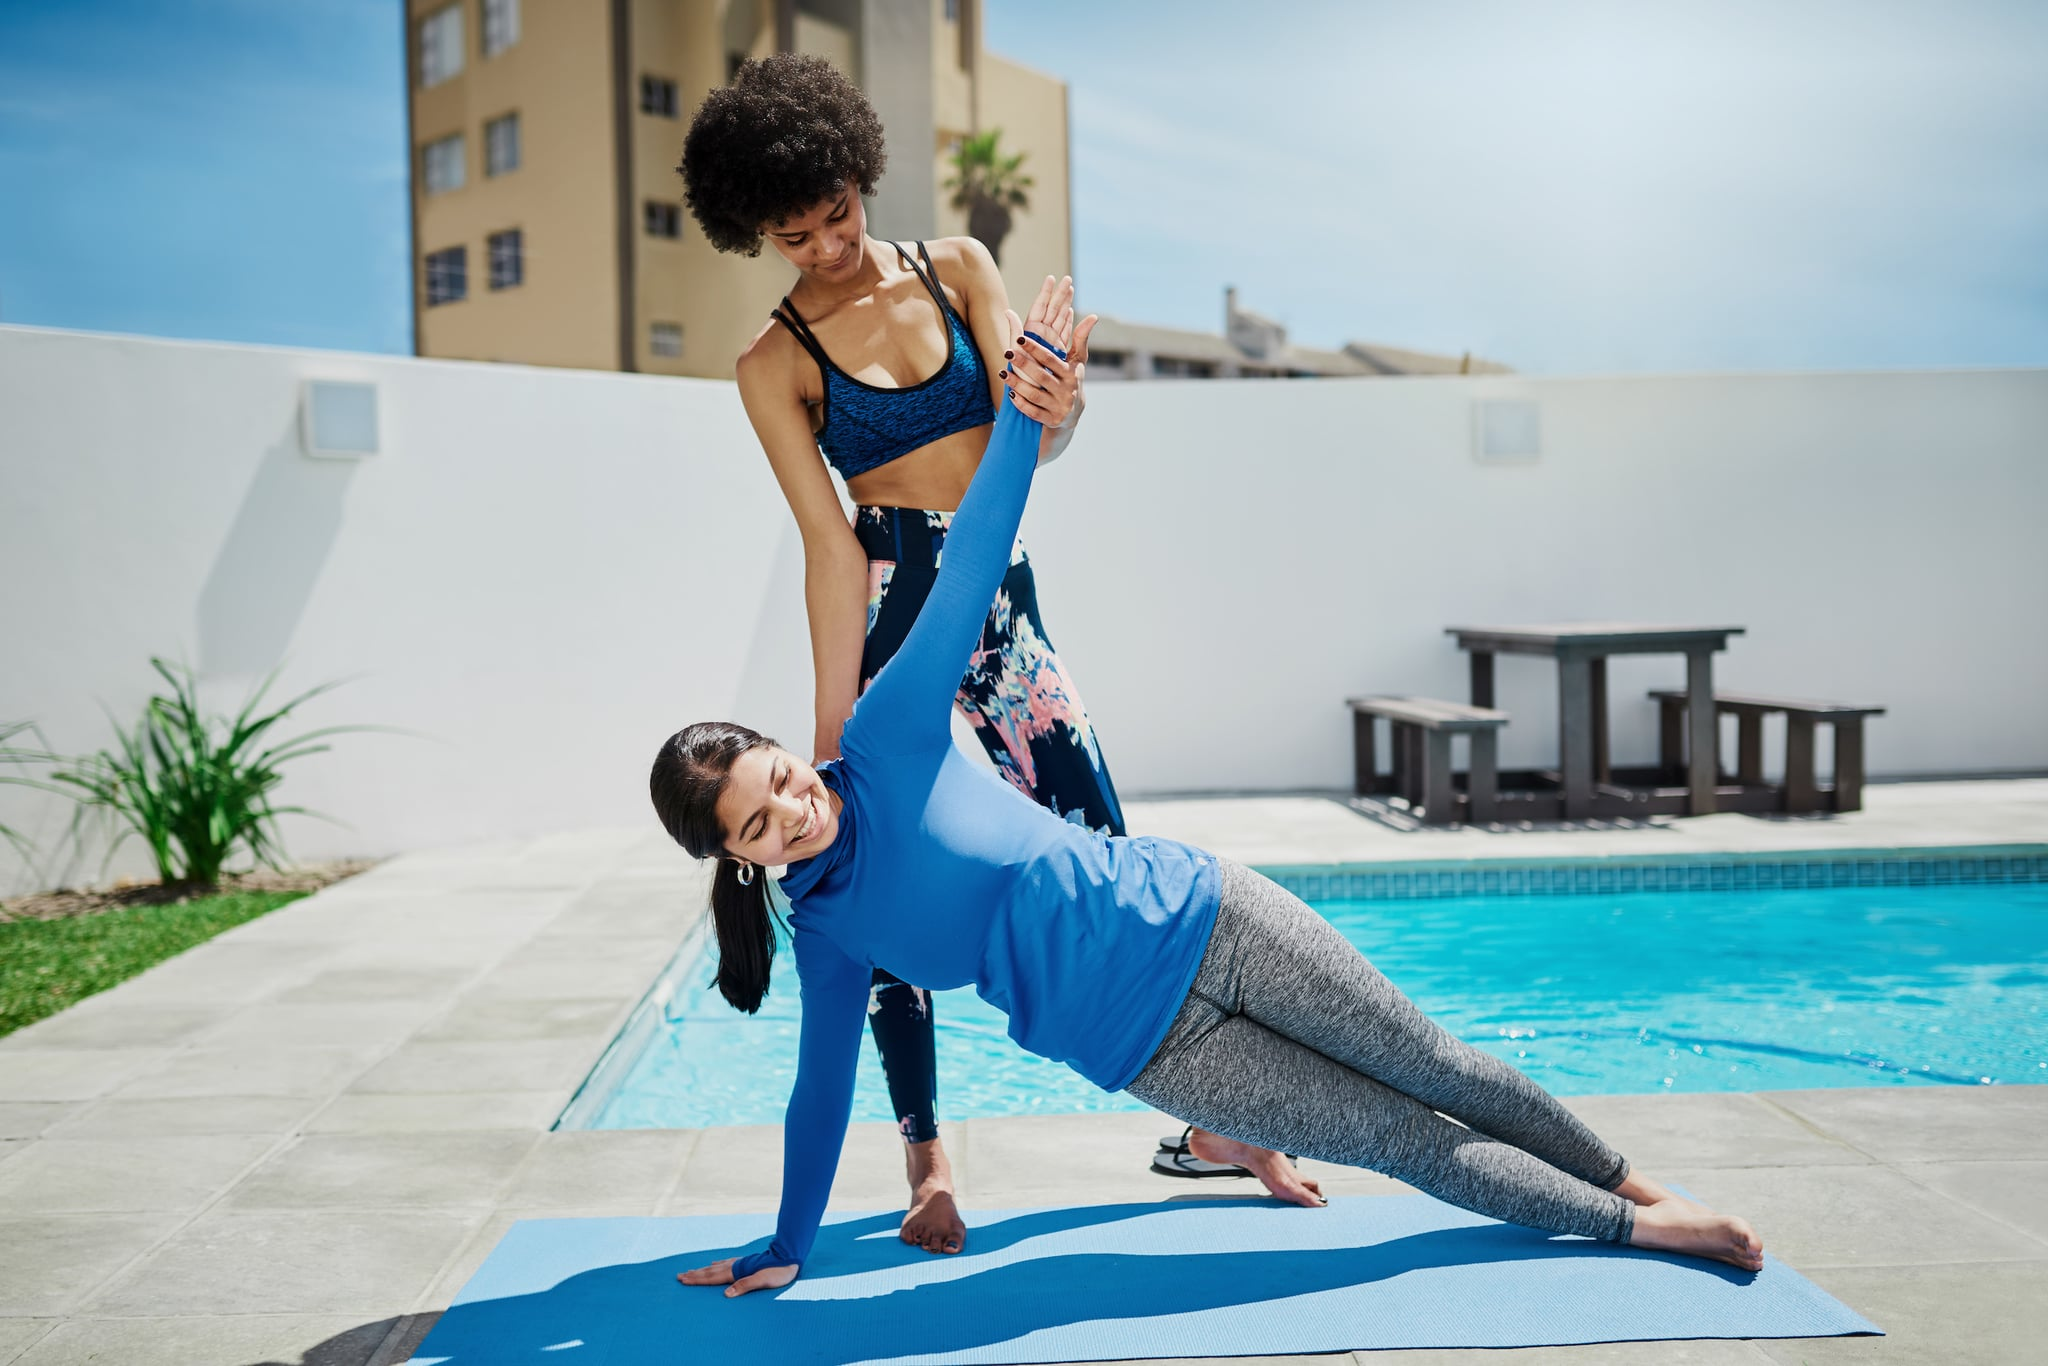 Shot of a young woman being assisted by a yoga instructor in a garden